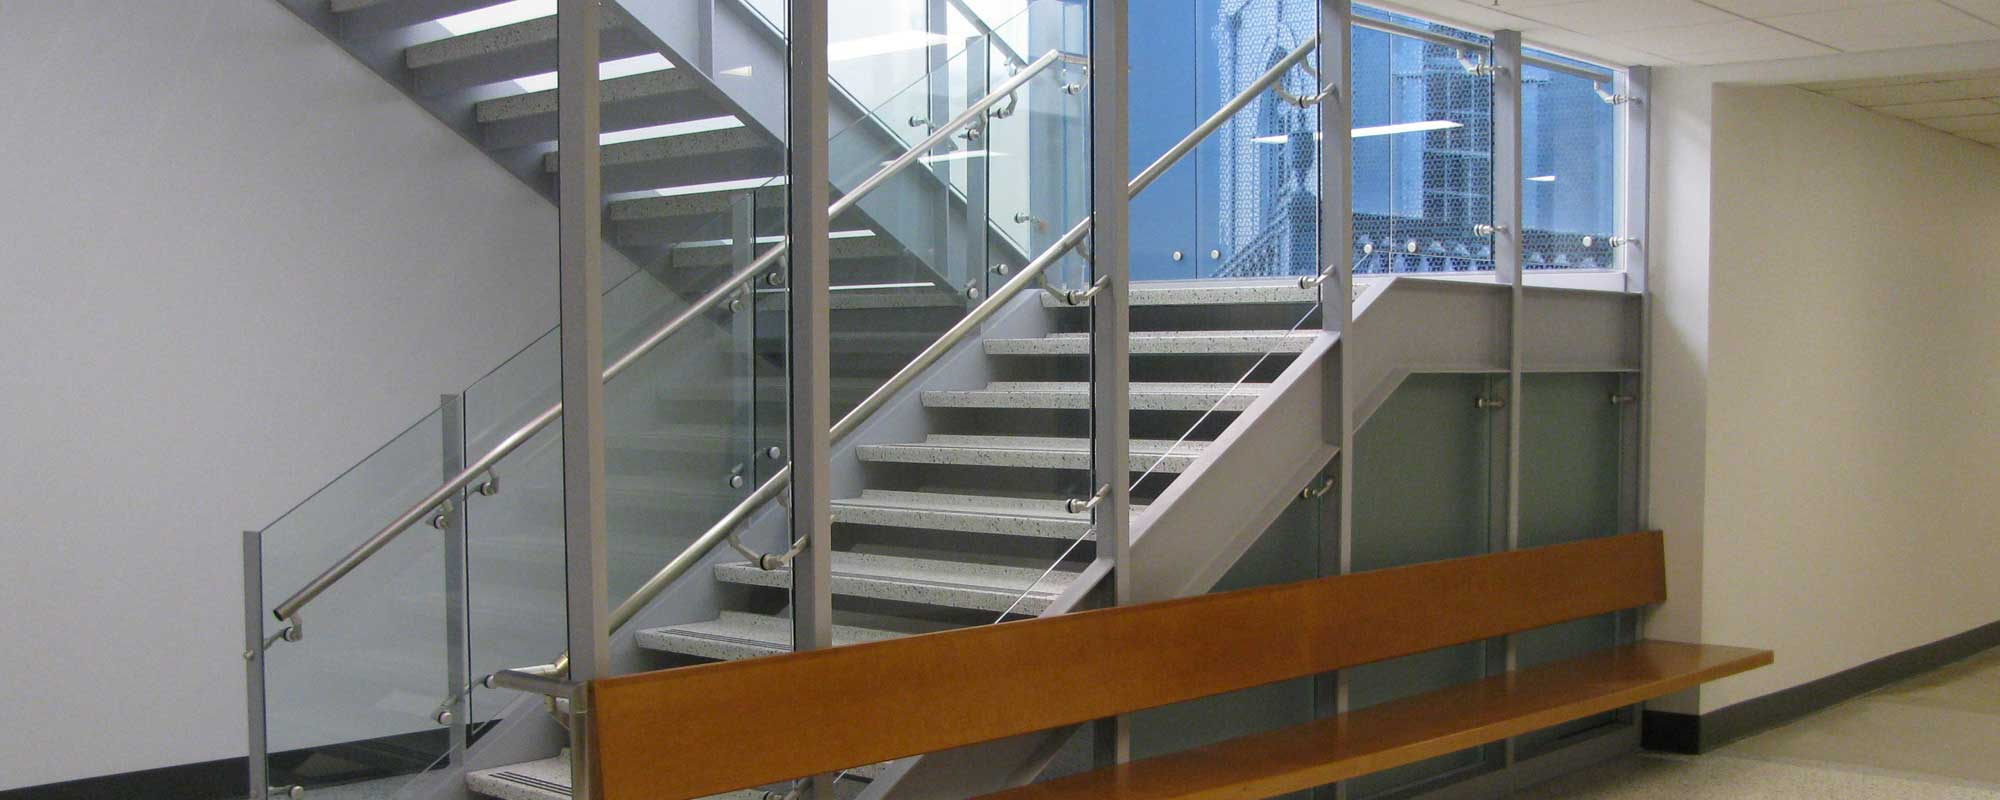 Architectural Fittings - Glass Panel Handrail Staircase